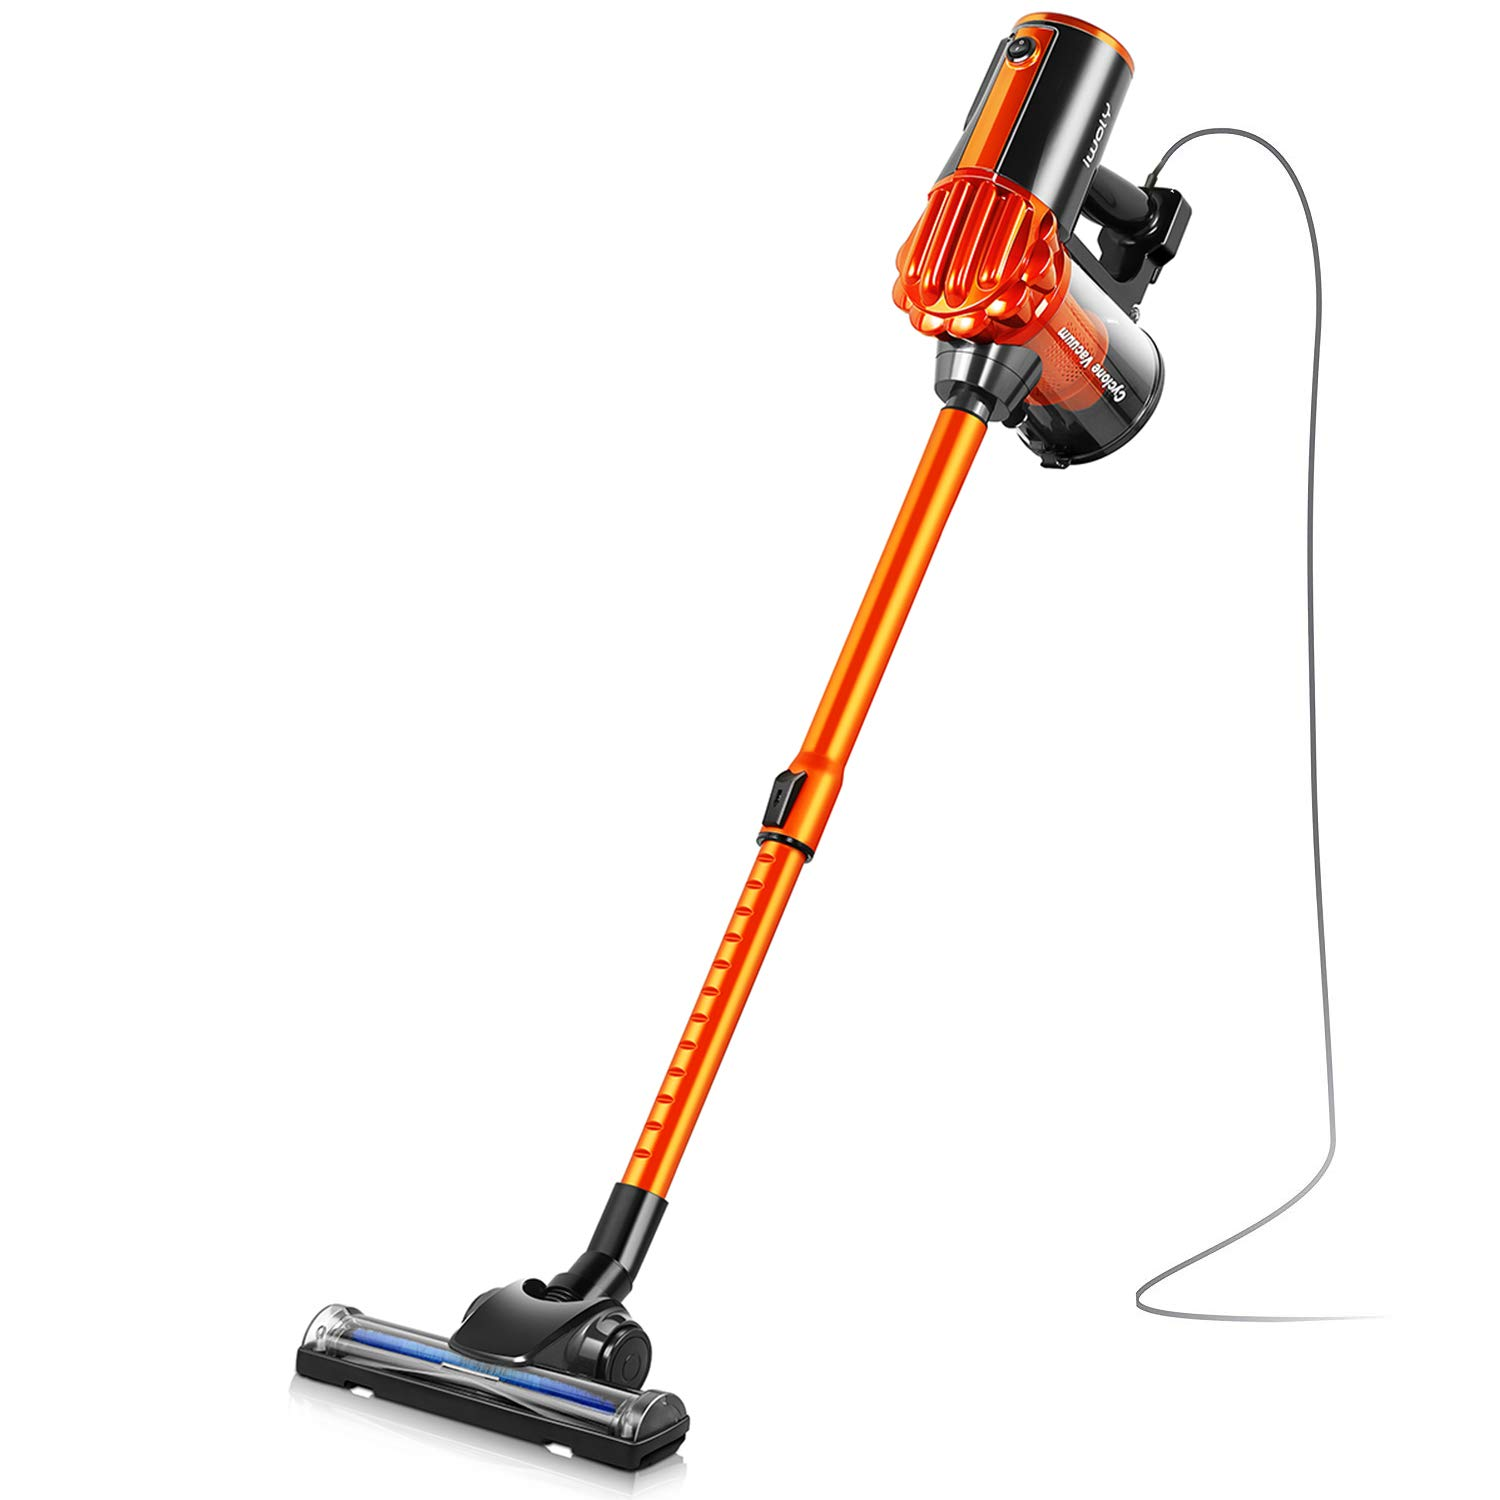 iwoly V600 Vacuum Cleaner 600W Lightweight Corded Bagless Stick and Handheld Vacuum with Cyclone HEPA Filtration by iwoly